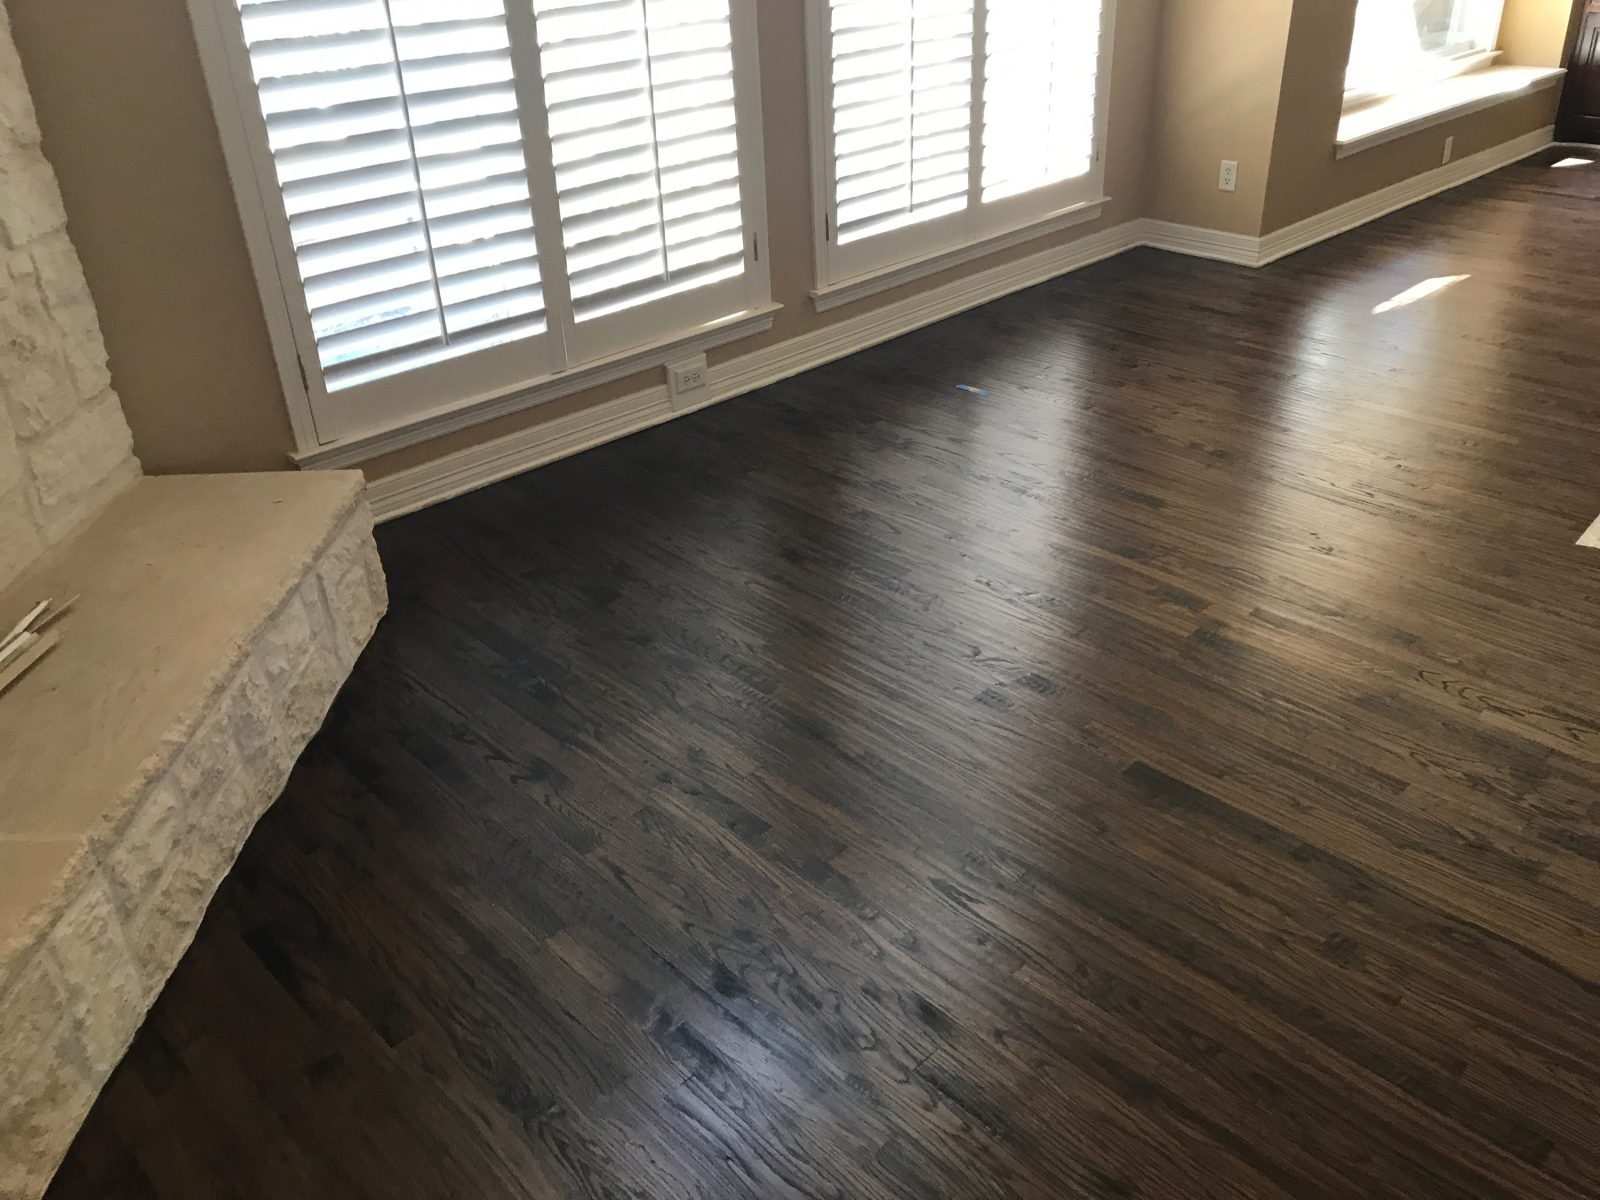 Solid Wood Floors In Flower Mound Texas Gc Flooring Pros